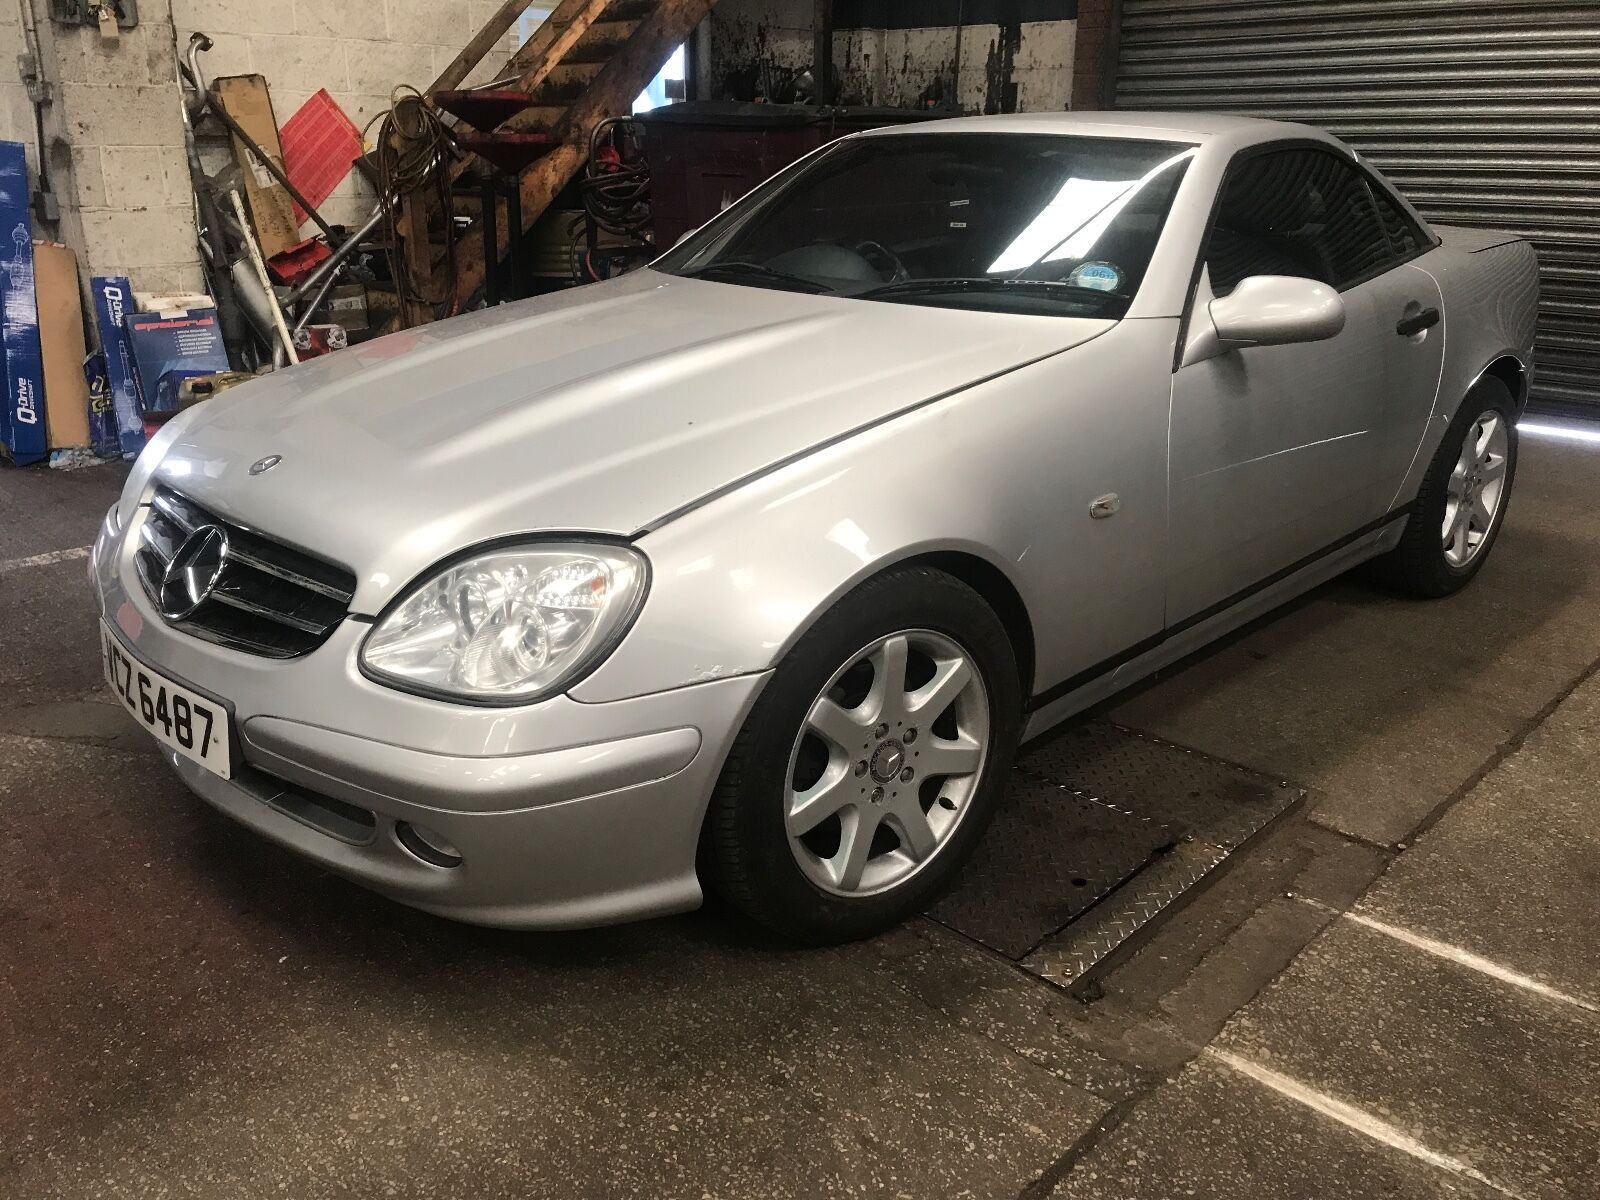 mercedes benz slk 230 convertible hard top 1998 private plate spares or repairs. Black Bedroom Furniture Sets. Home Design Ideas